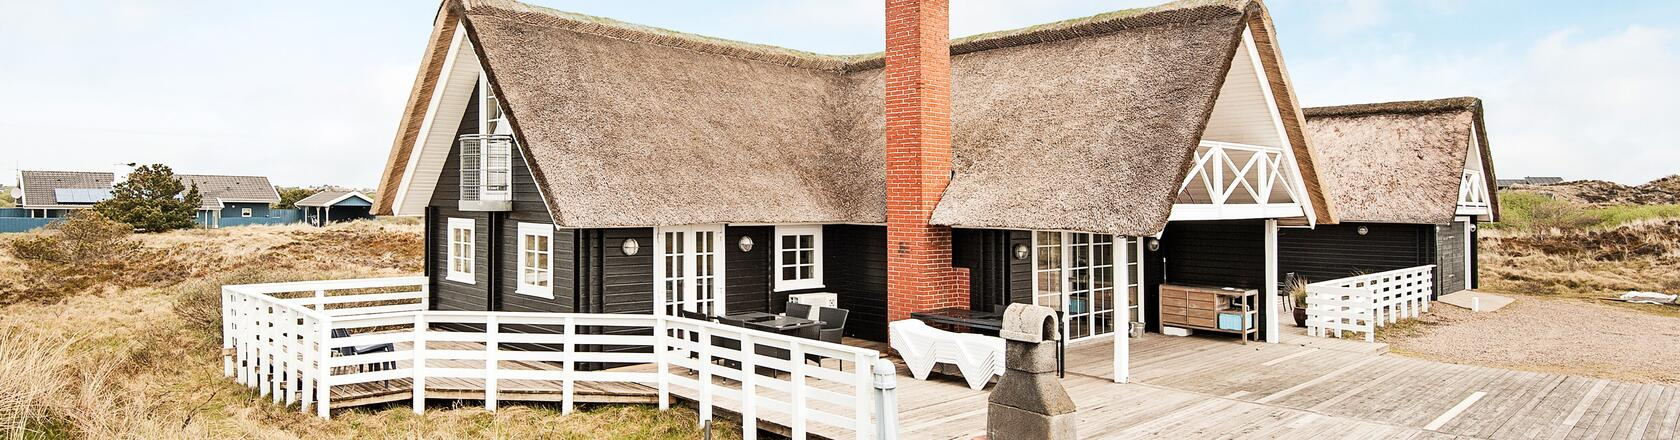 Book a holiday cottage on Fanø - Idyllic island holiday in the Wadden Sea